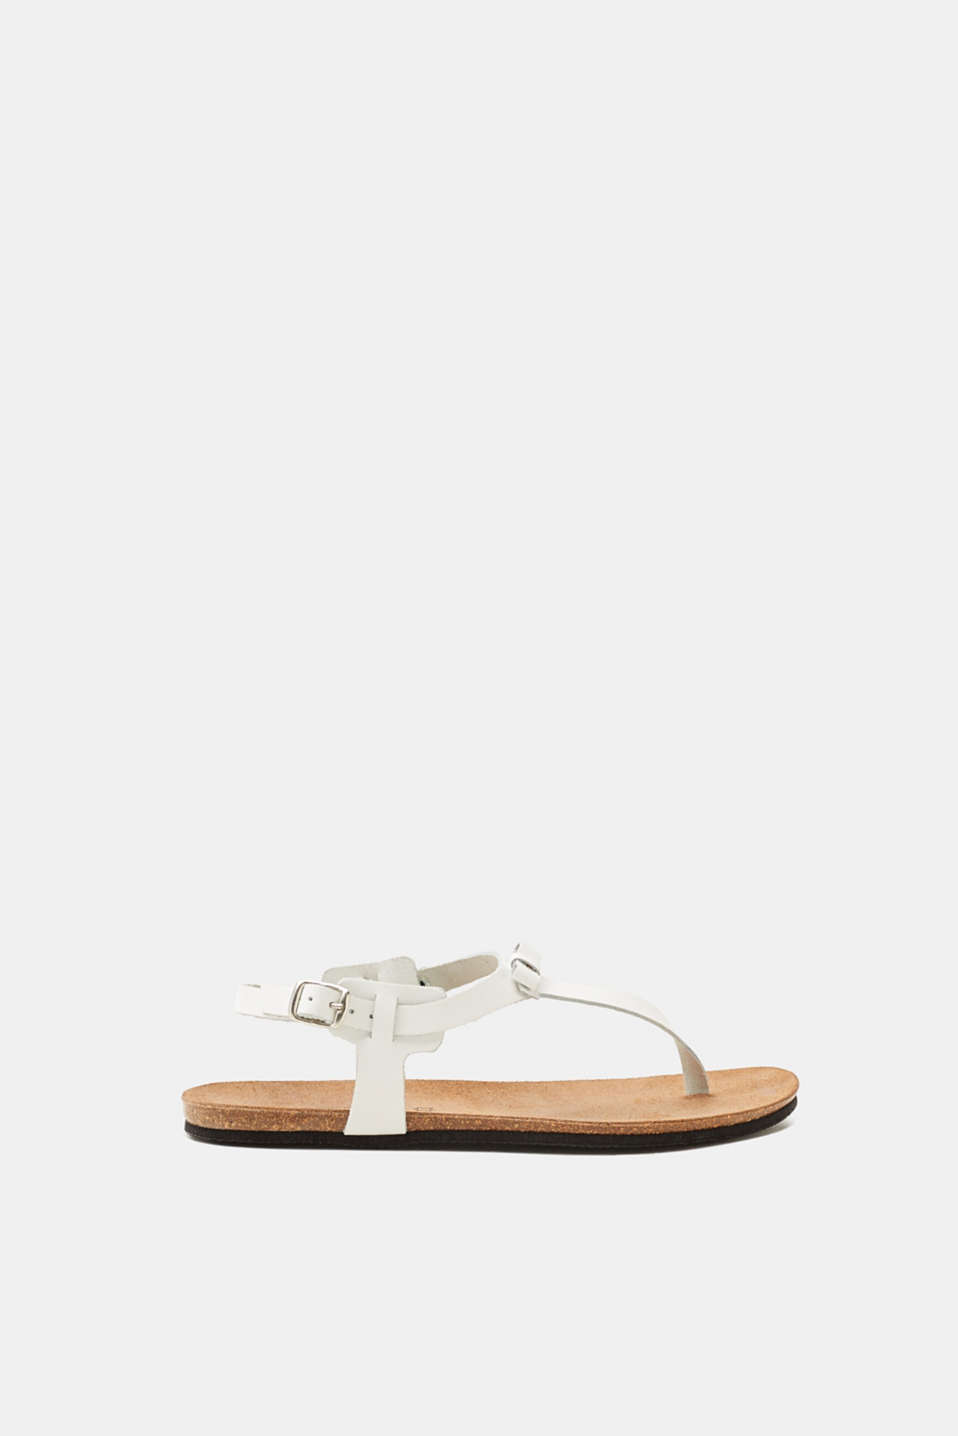 Esprit - Toe-post leather sandals